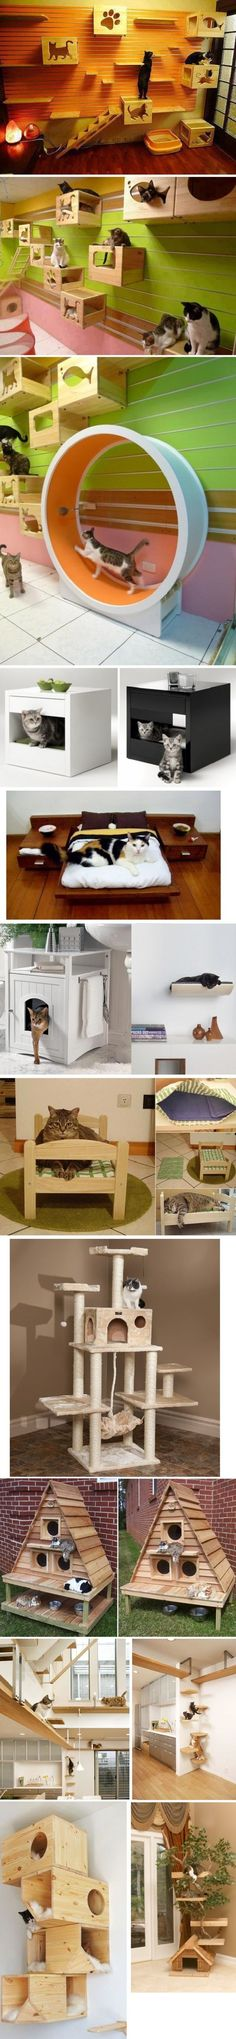 15 Awesome Cat Playhouses | WoodworkerZ.com                                                                                                                                                      More